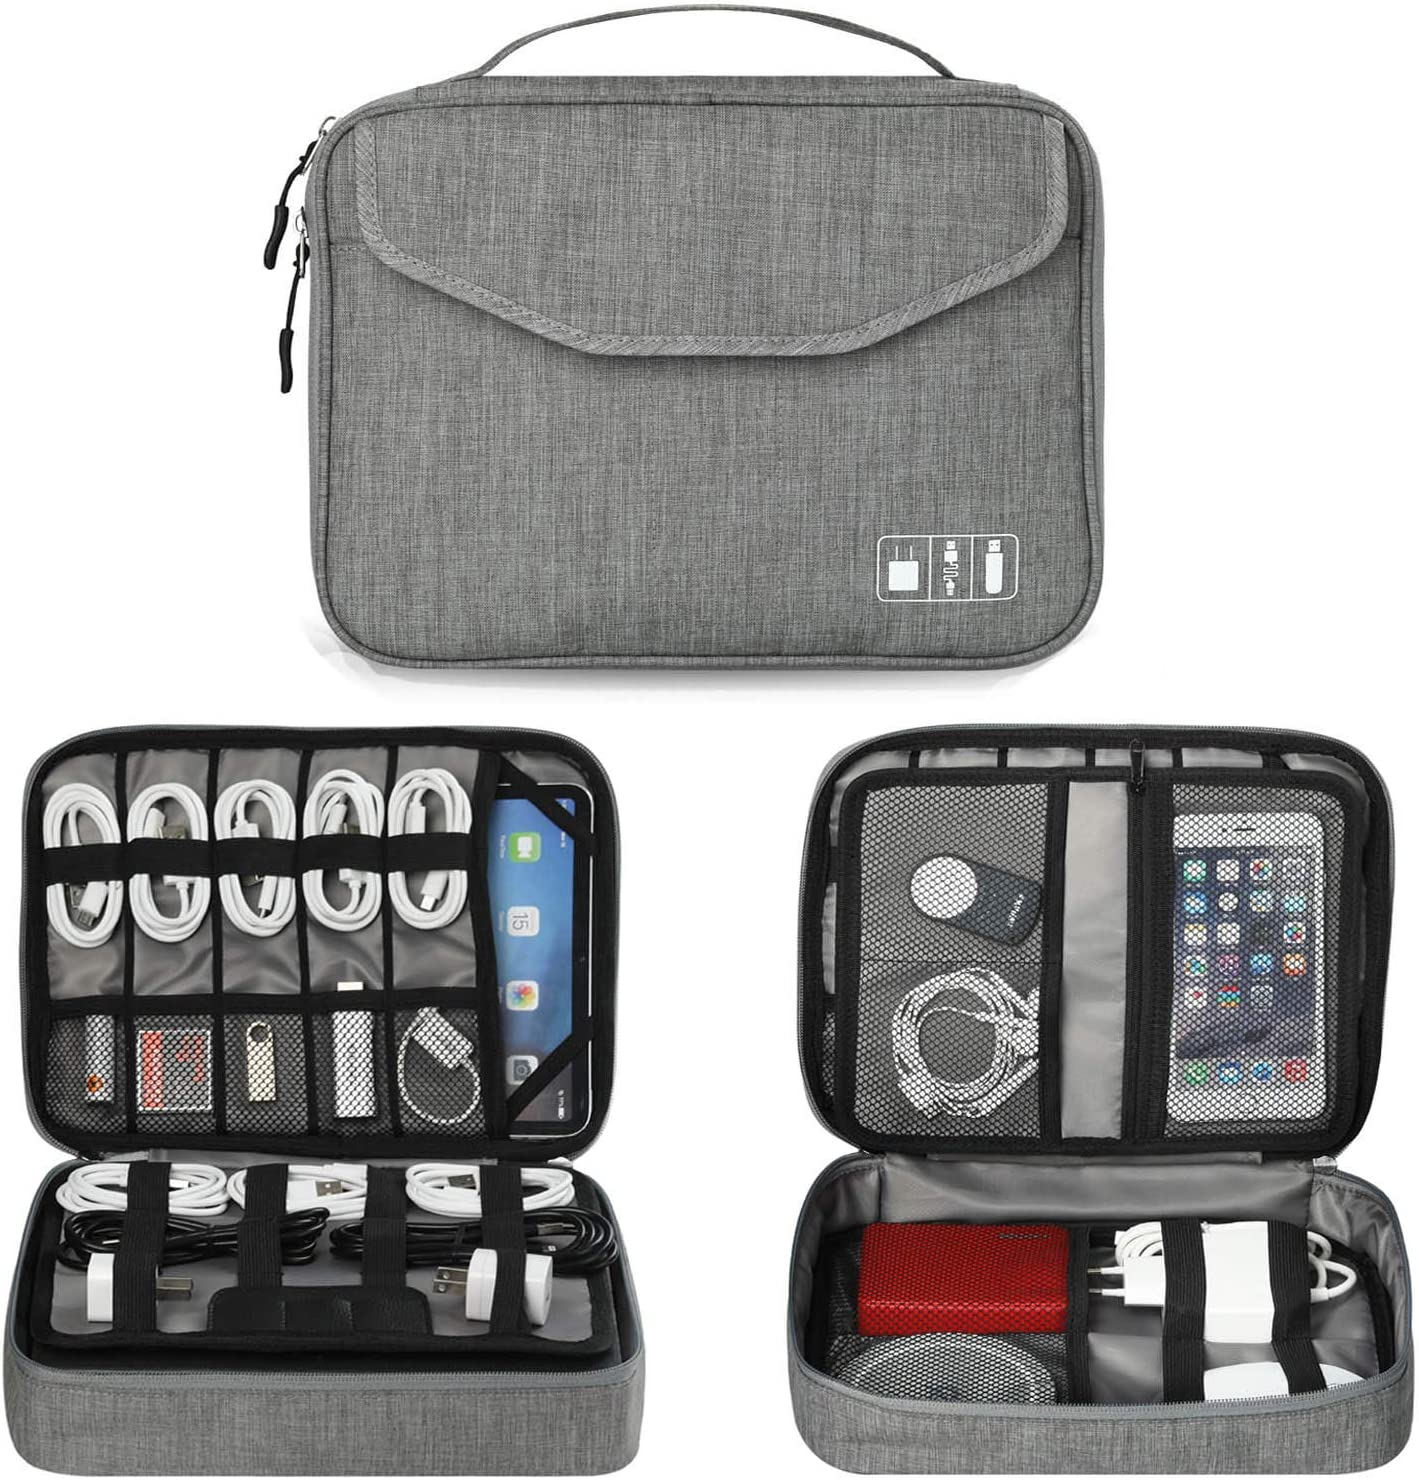 Electronics Organizer, Jelly Comb Electronic Accessories Double Layer Travel Cable Organizer Cord Storage Bag for Cables, iPad (Up to 12.9''), Power Bank, USB Flash Drive and More-Large (Gray)